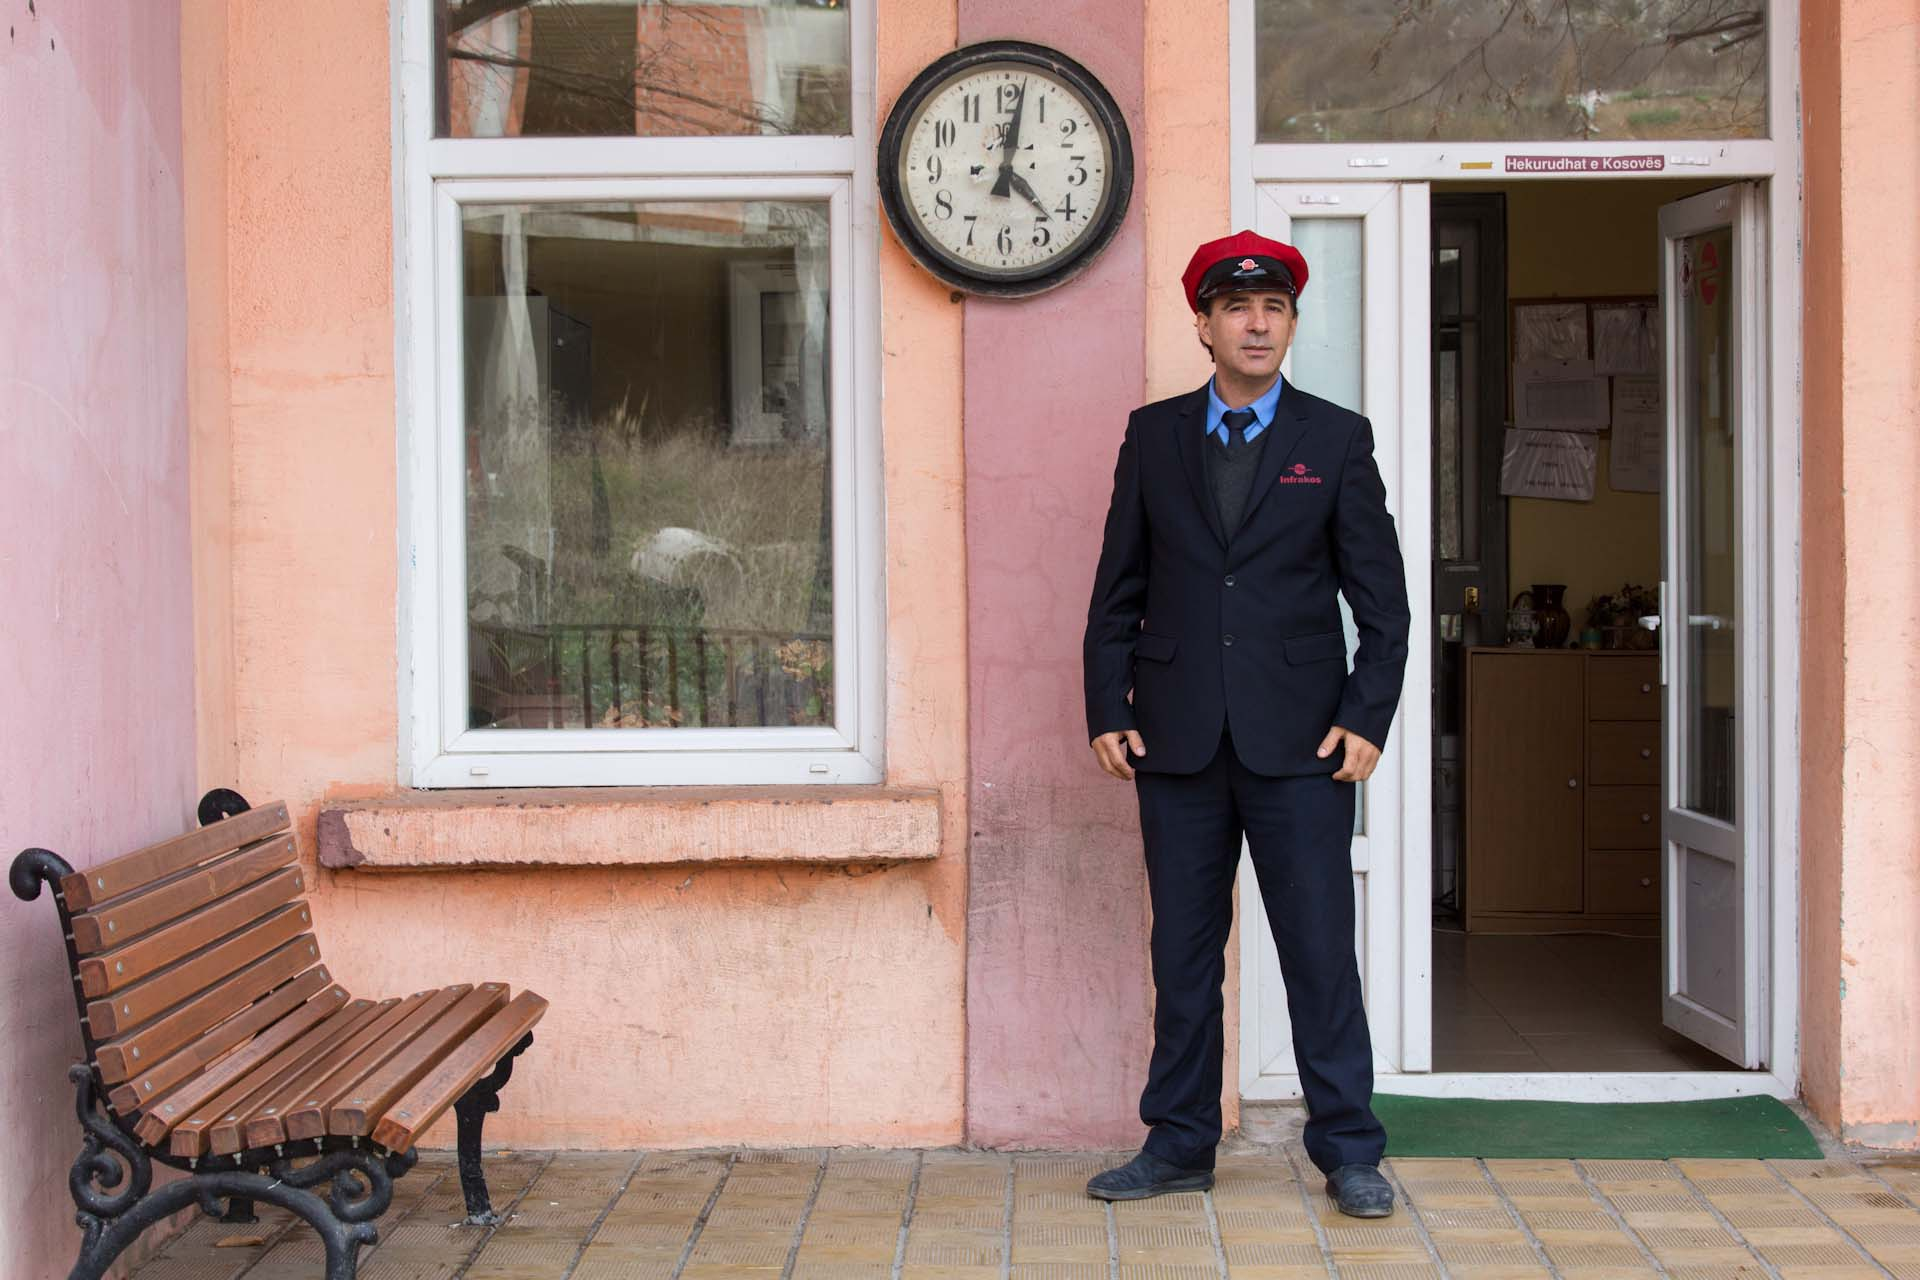 Milaim, the manager of Pristina railway station, in the capital of Kosovo, was pleased to be photographed. The clock stopped four years ago.